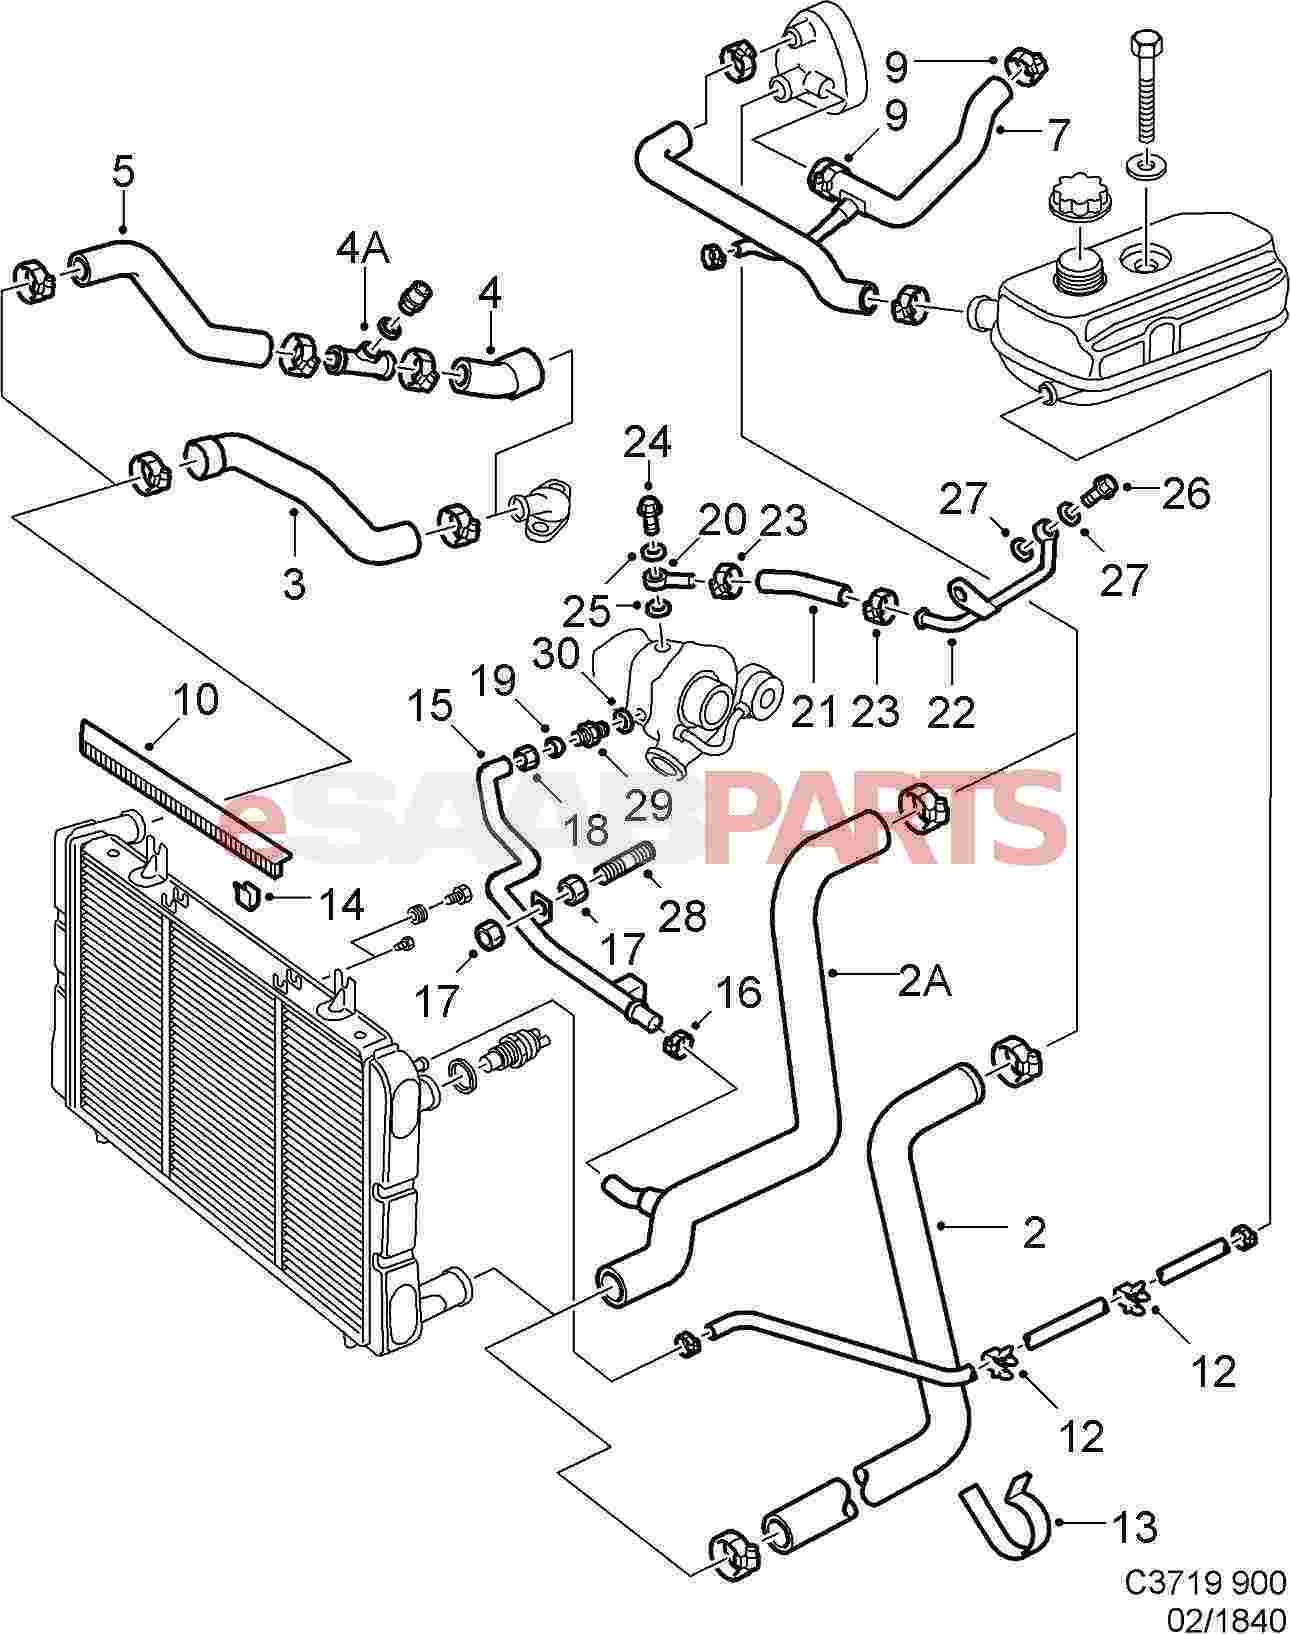 hight resolution of 1997 volkswagen jetta gl engine diagram simple wiring diagram2000 vw jetta 2 0 engine diagram wiring